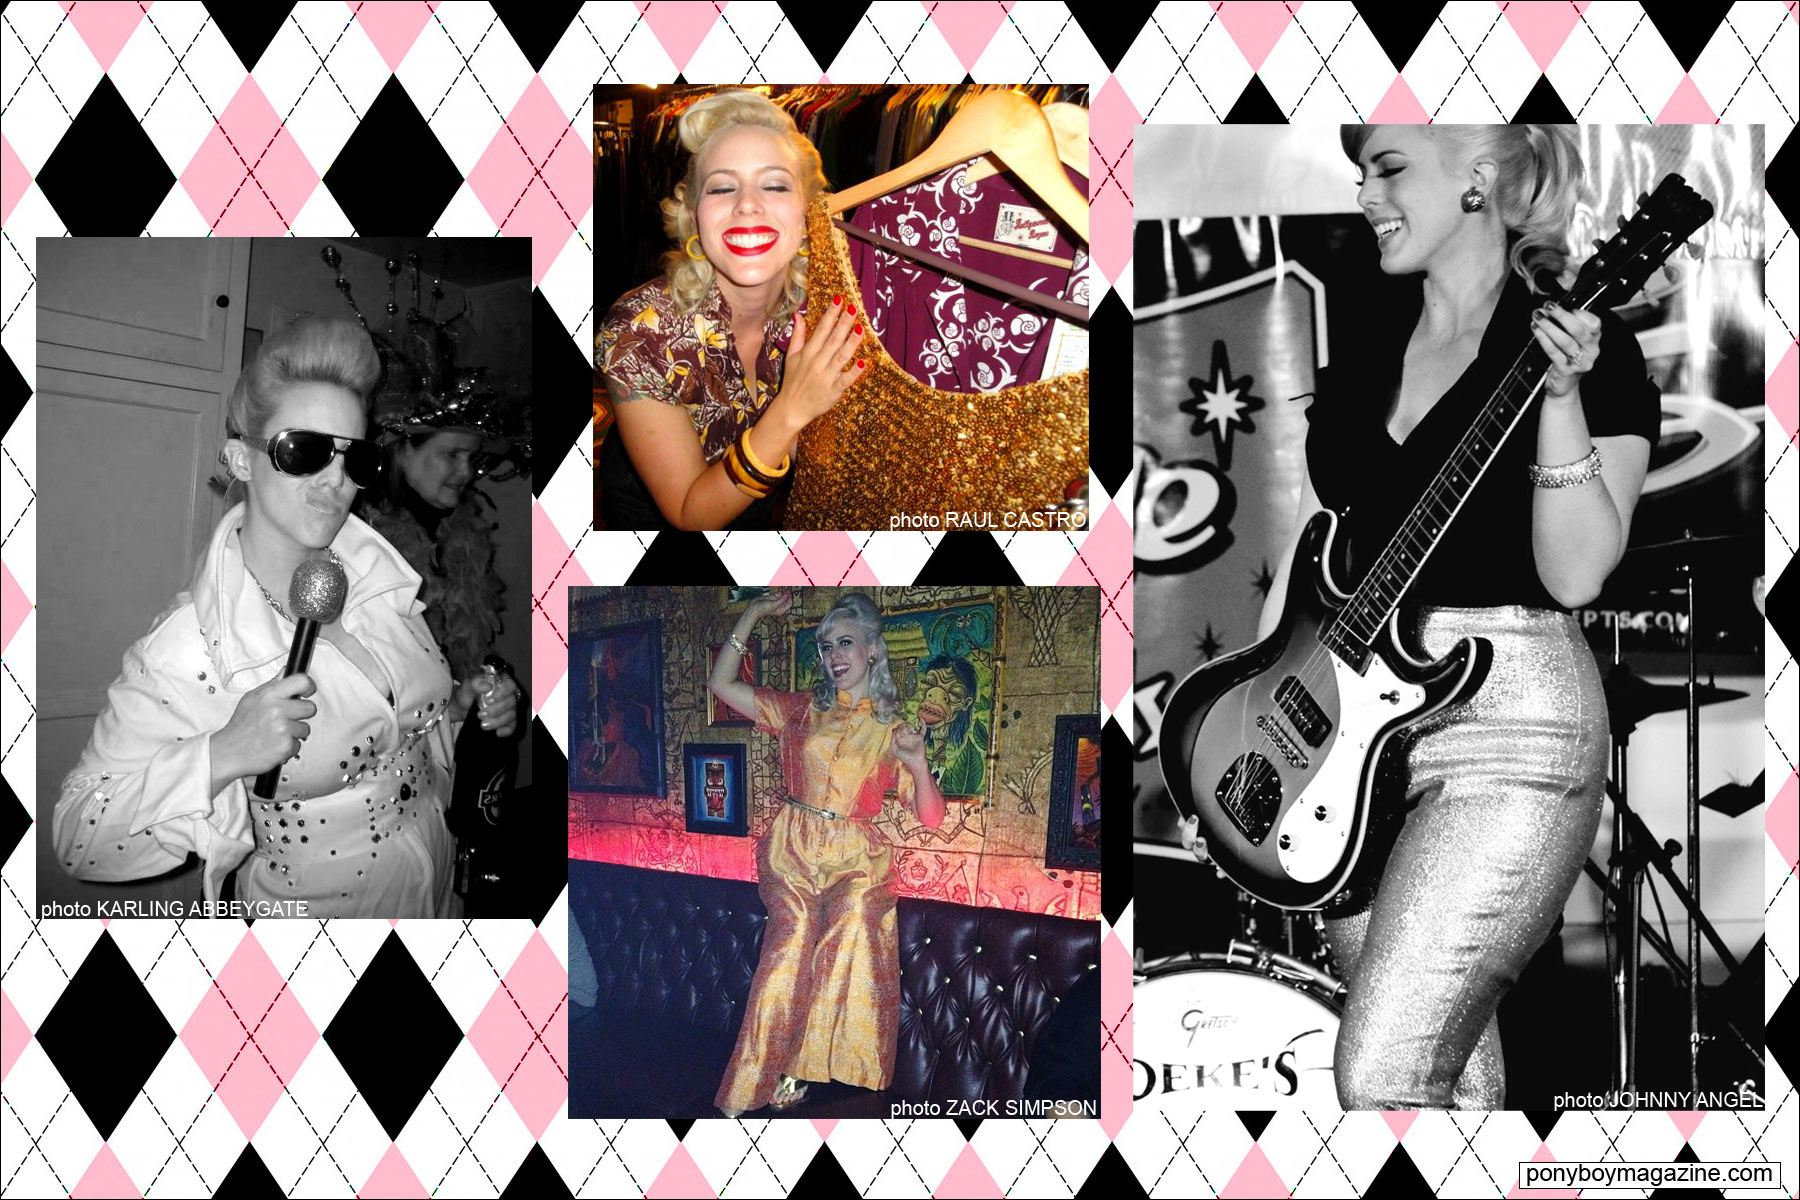 Assorted snapshots of The Rockabilly Socialite at various events. Ponyboy Magazine.